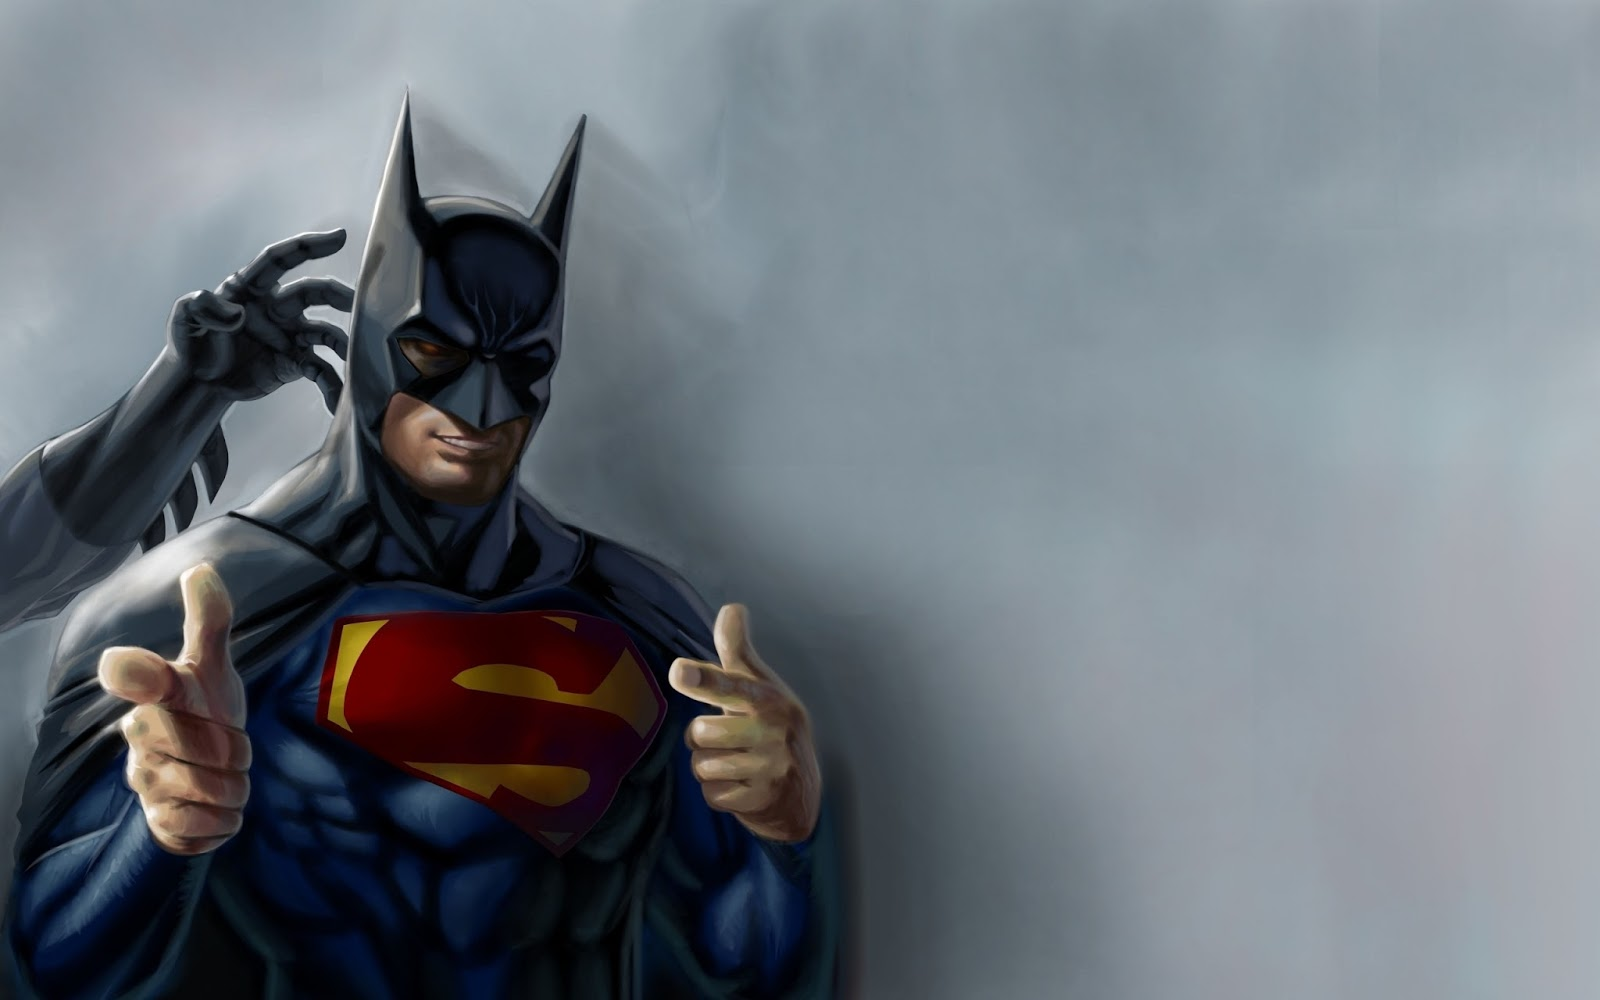 Superman Batman DC Comic Heroes Superhero Funny Parody HD Wallpaper i3 1600x1000